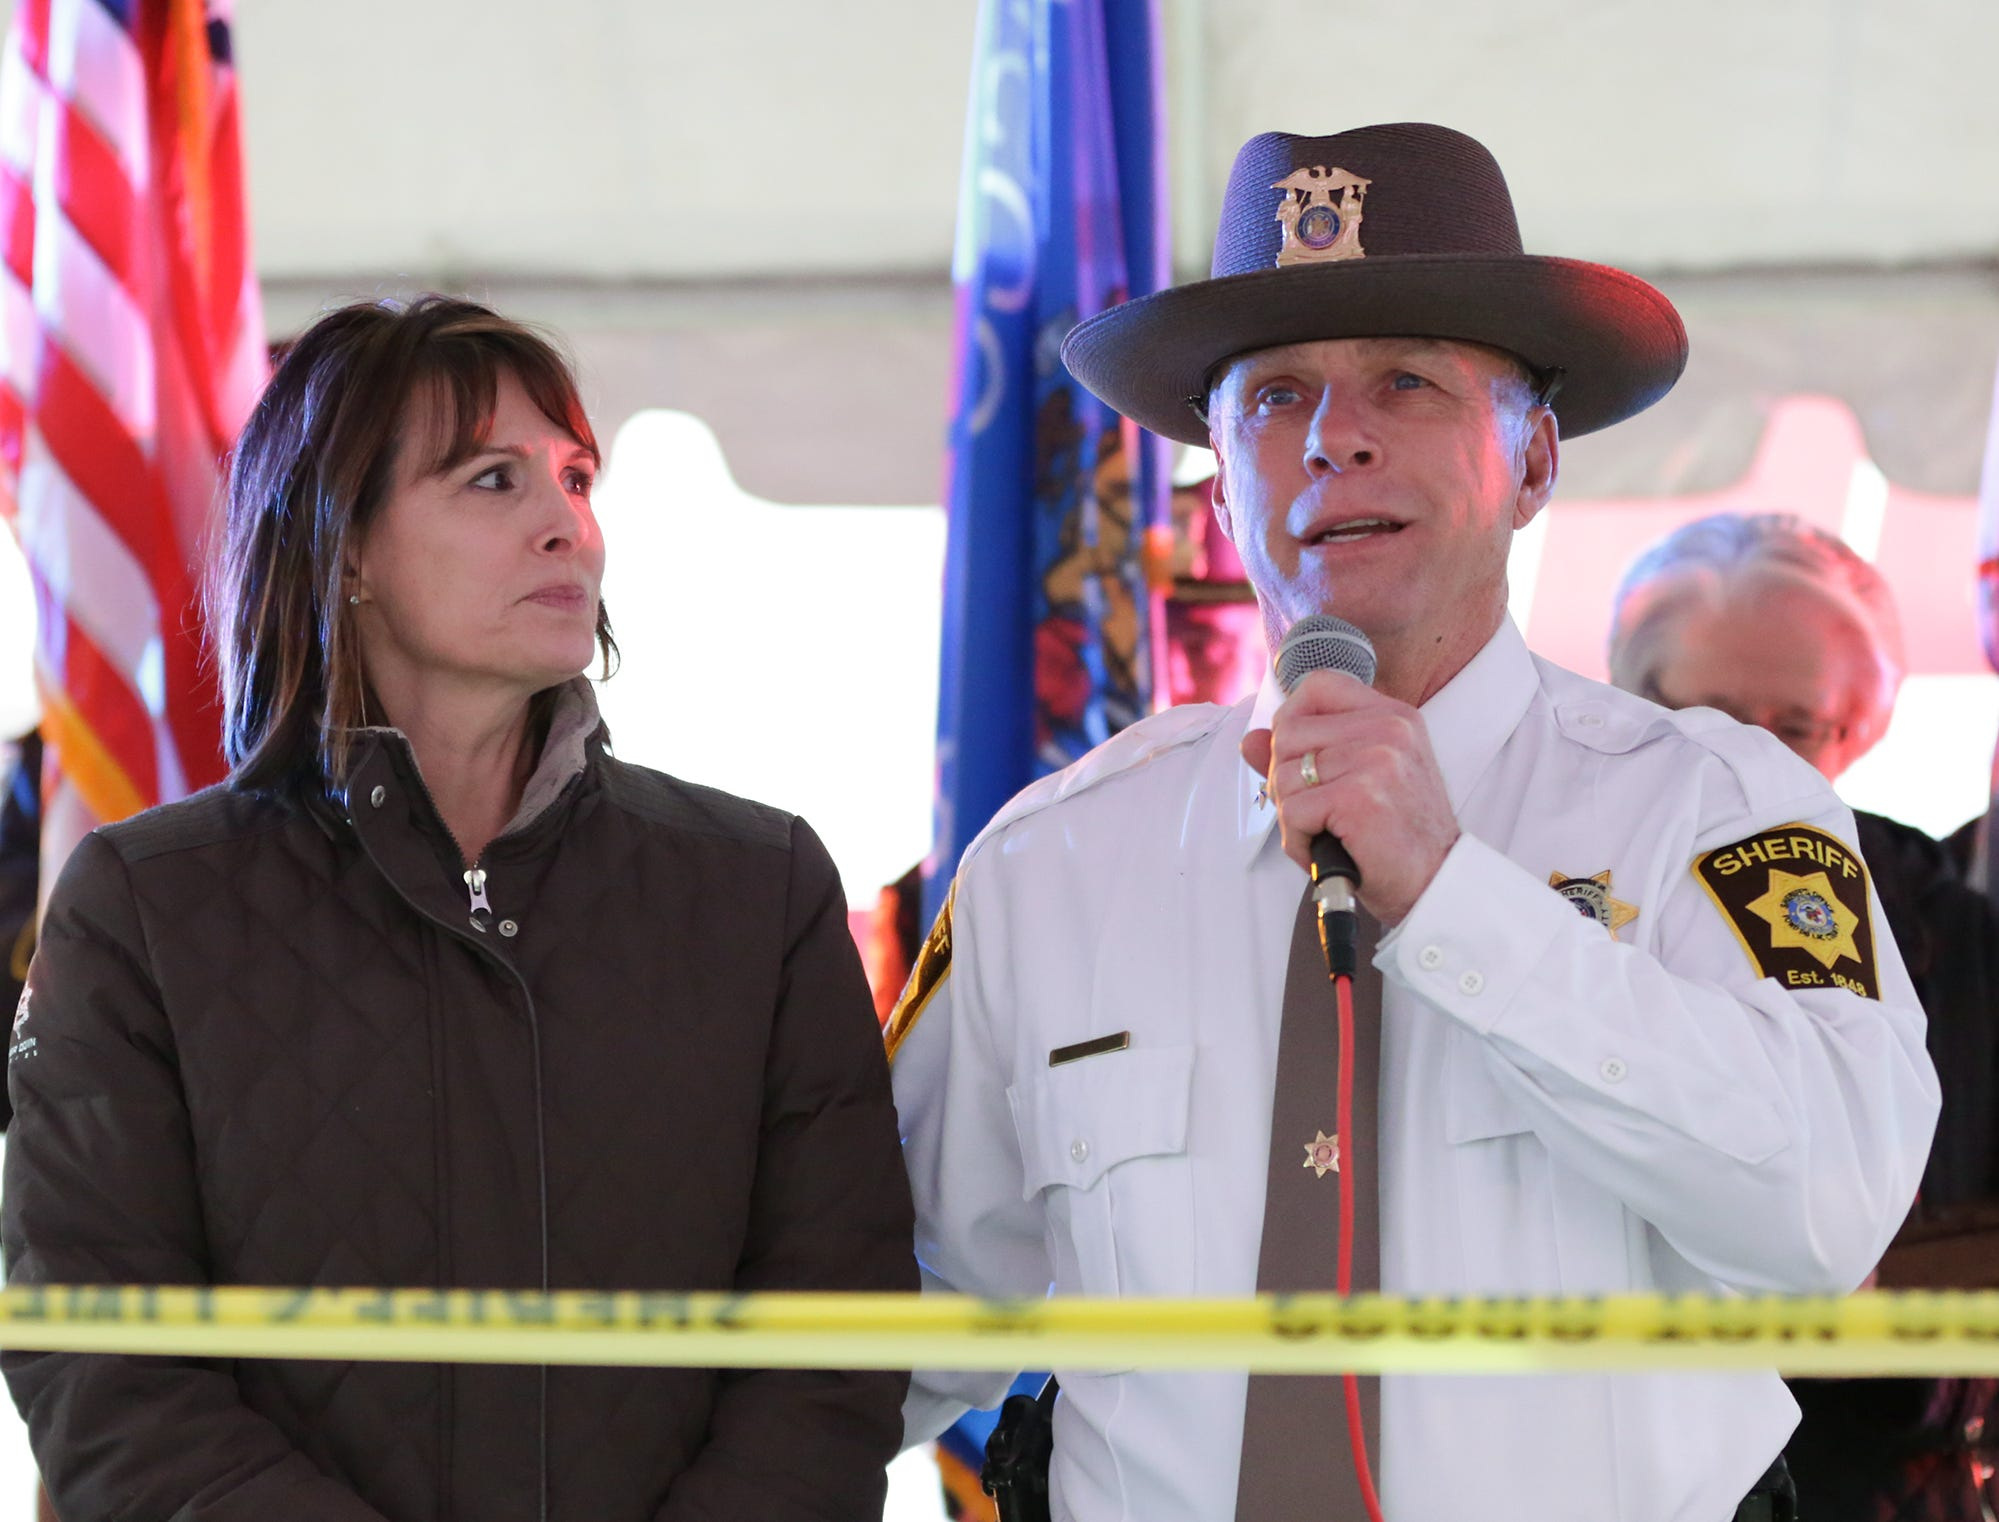 Recently retired Fond du Lac County Sheriff Mick Fink stands next to his wife Mickie Monday, January 7, 2019 as he addresses a crowd that was on-hand to see him do his ramp walk. A tradition the department does to see off retiring personel. Fink retired from the position of Fond du Lac County Sheriff after serving for 12 years. Submitted by Roxanne Abler/USA TODAY NETWORK-Wisconsin